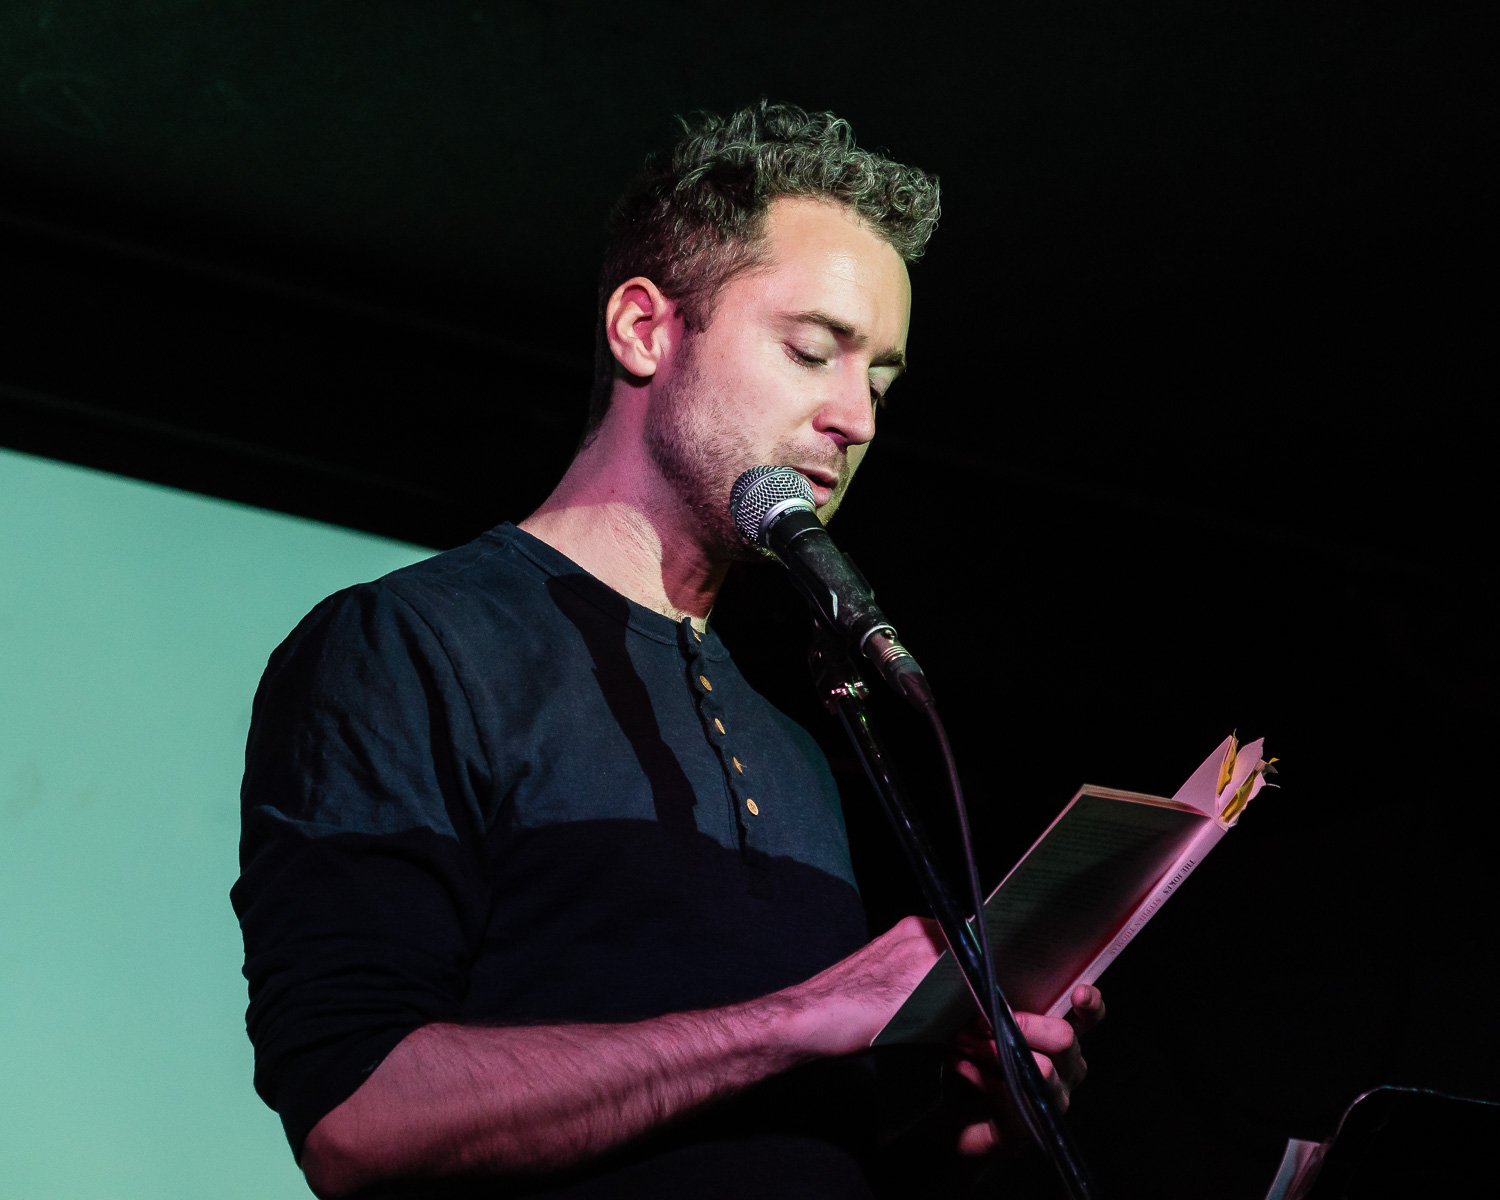 Stephen Thomas reading from The Jokes